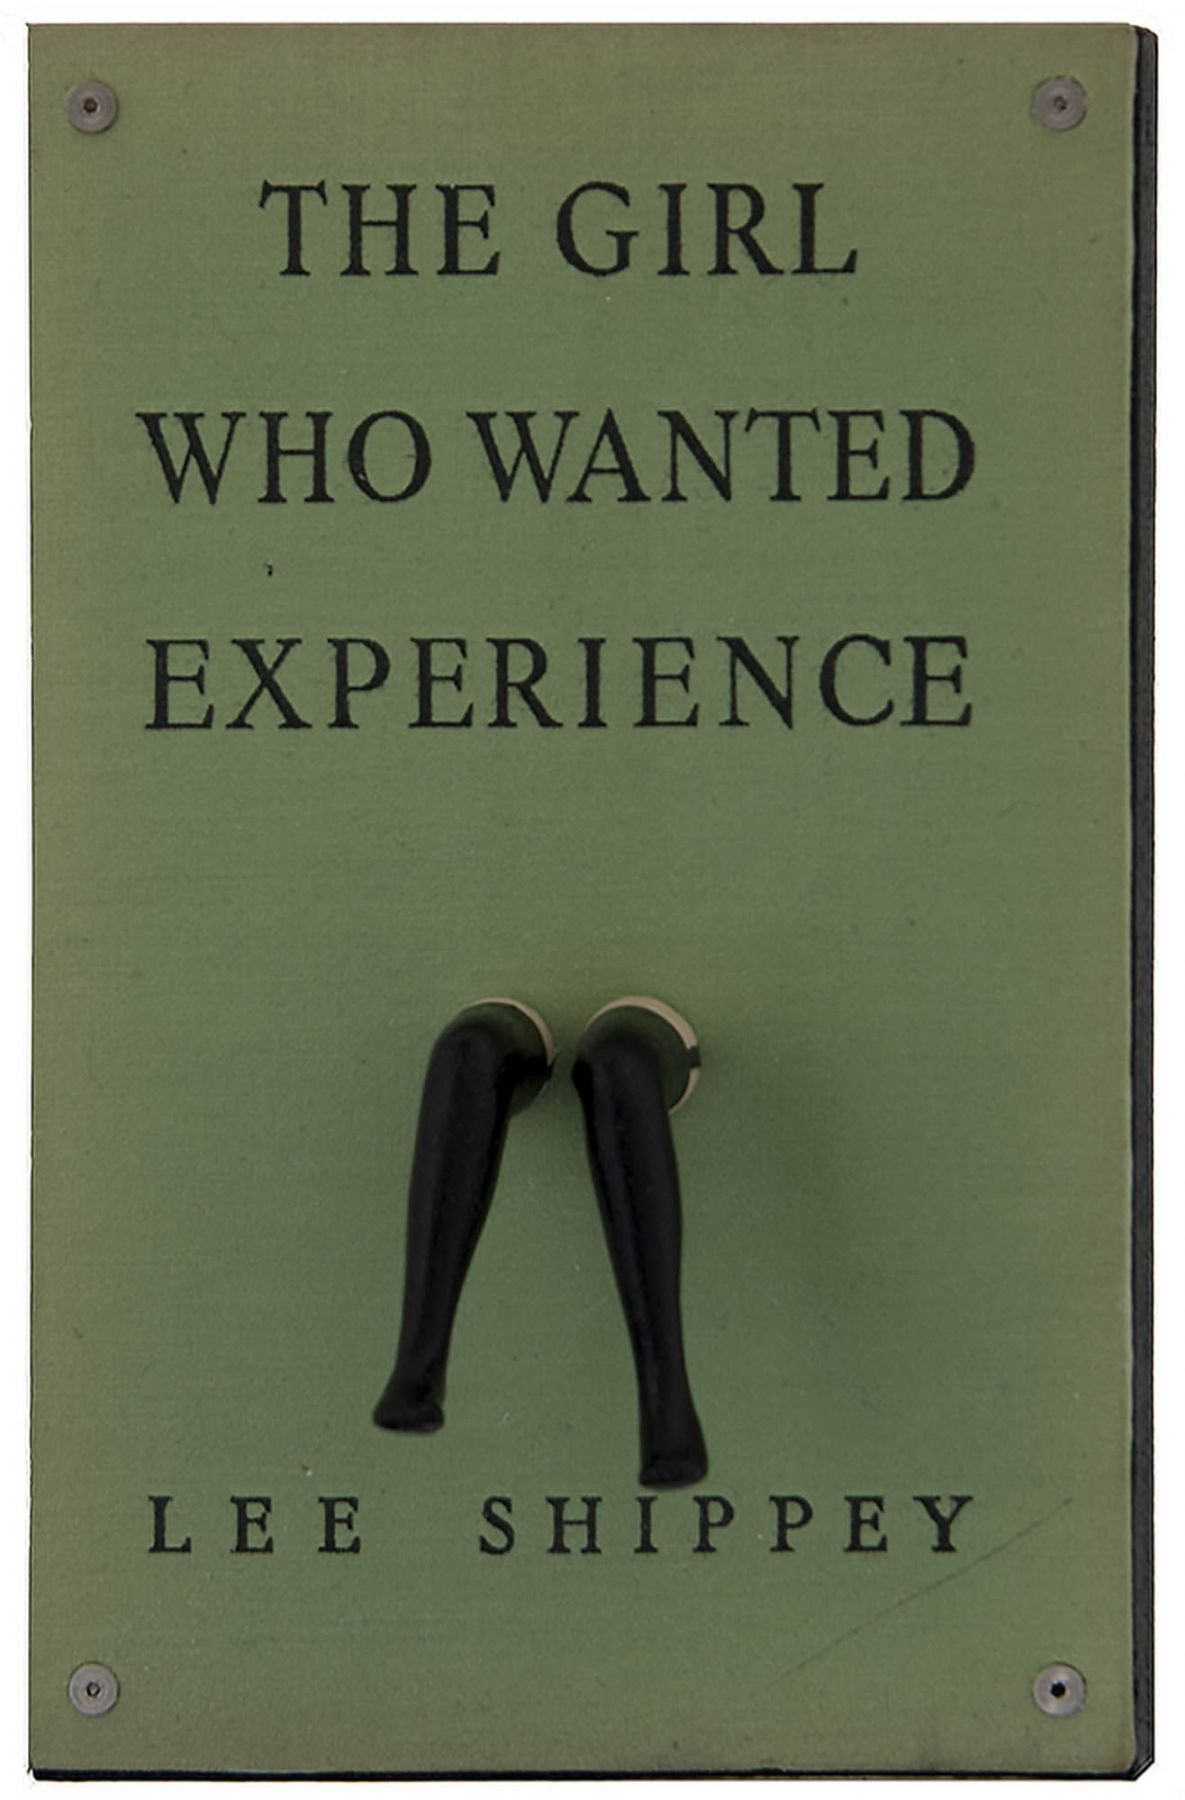 Nancy Gifford, The Girl Who Wanted Experience - #metoo Series, 2017